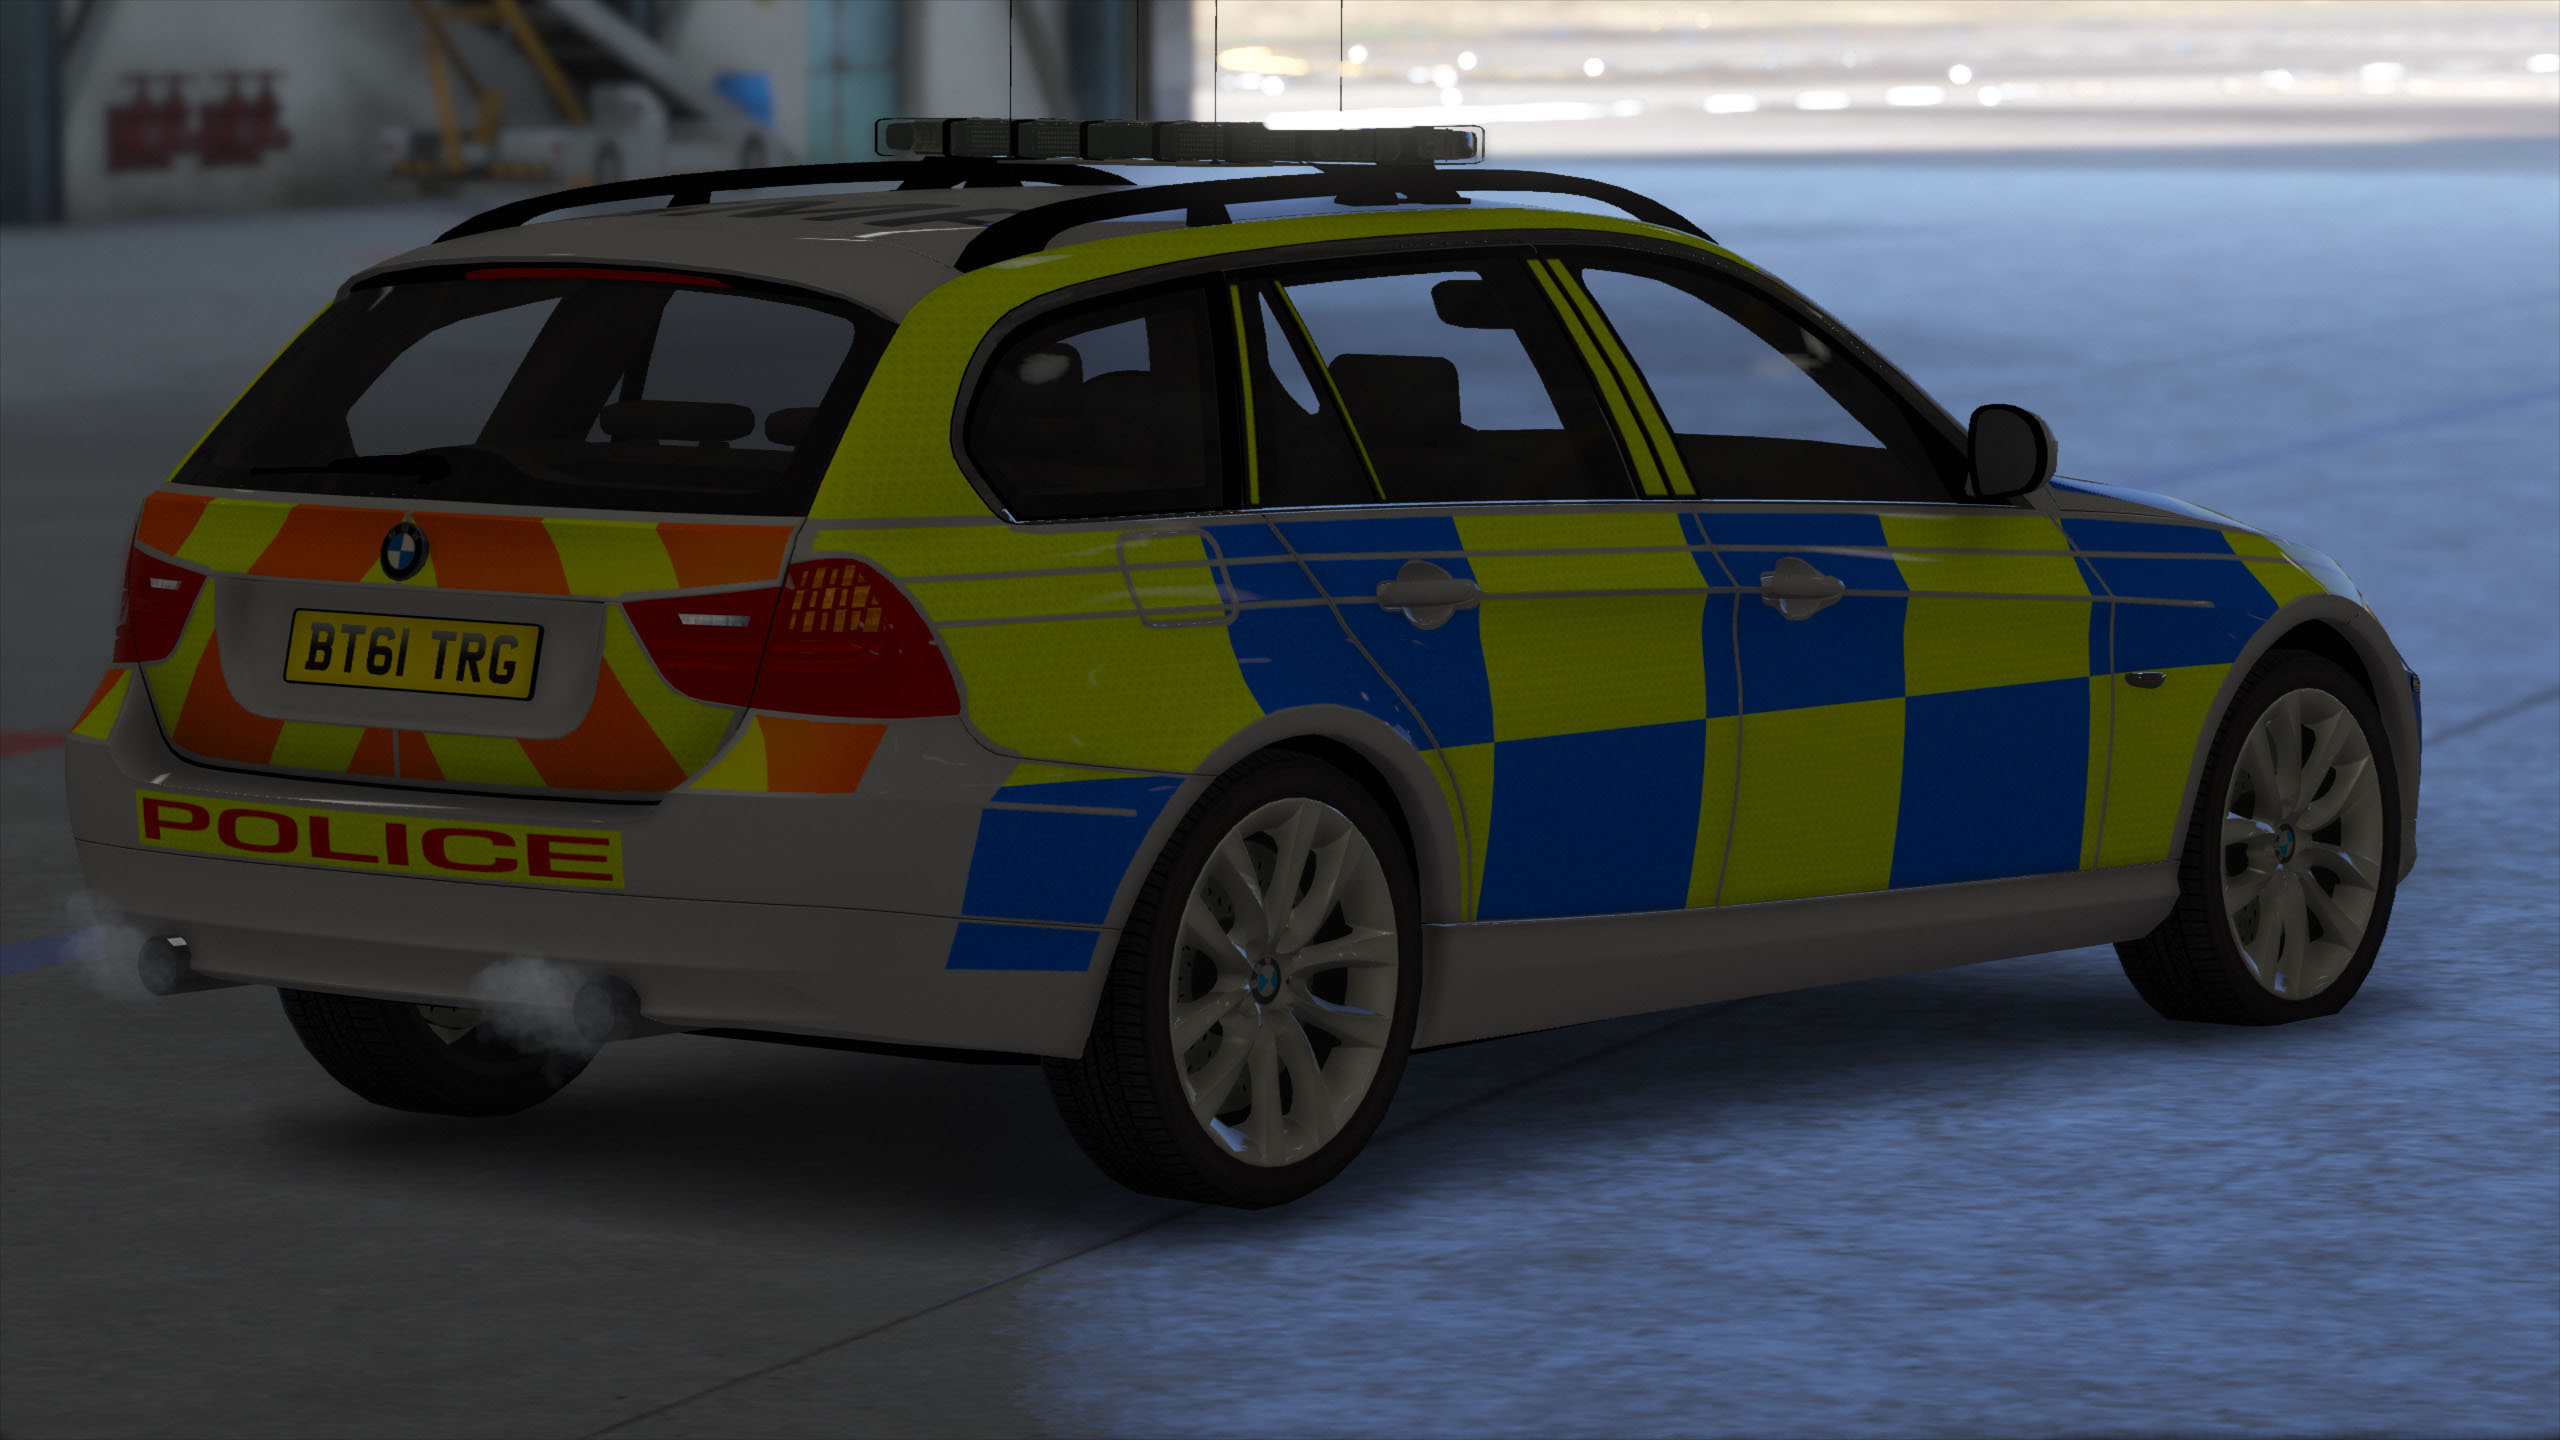 Bmw 5 series touring police 2013 uk wallpapers and hd images car - 5c3150 Gta5 2016 04 13 11 32 04 943